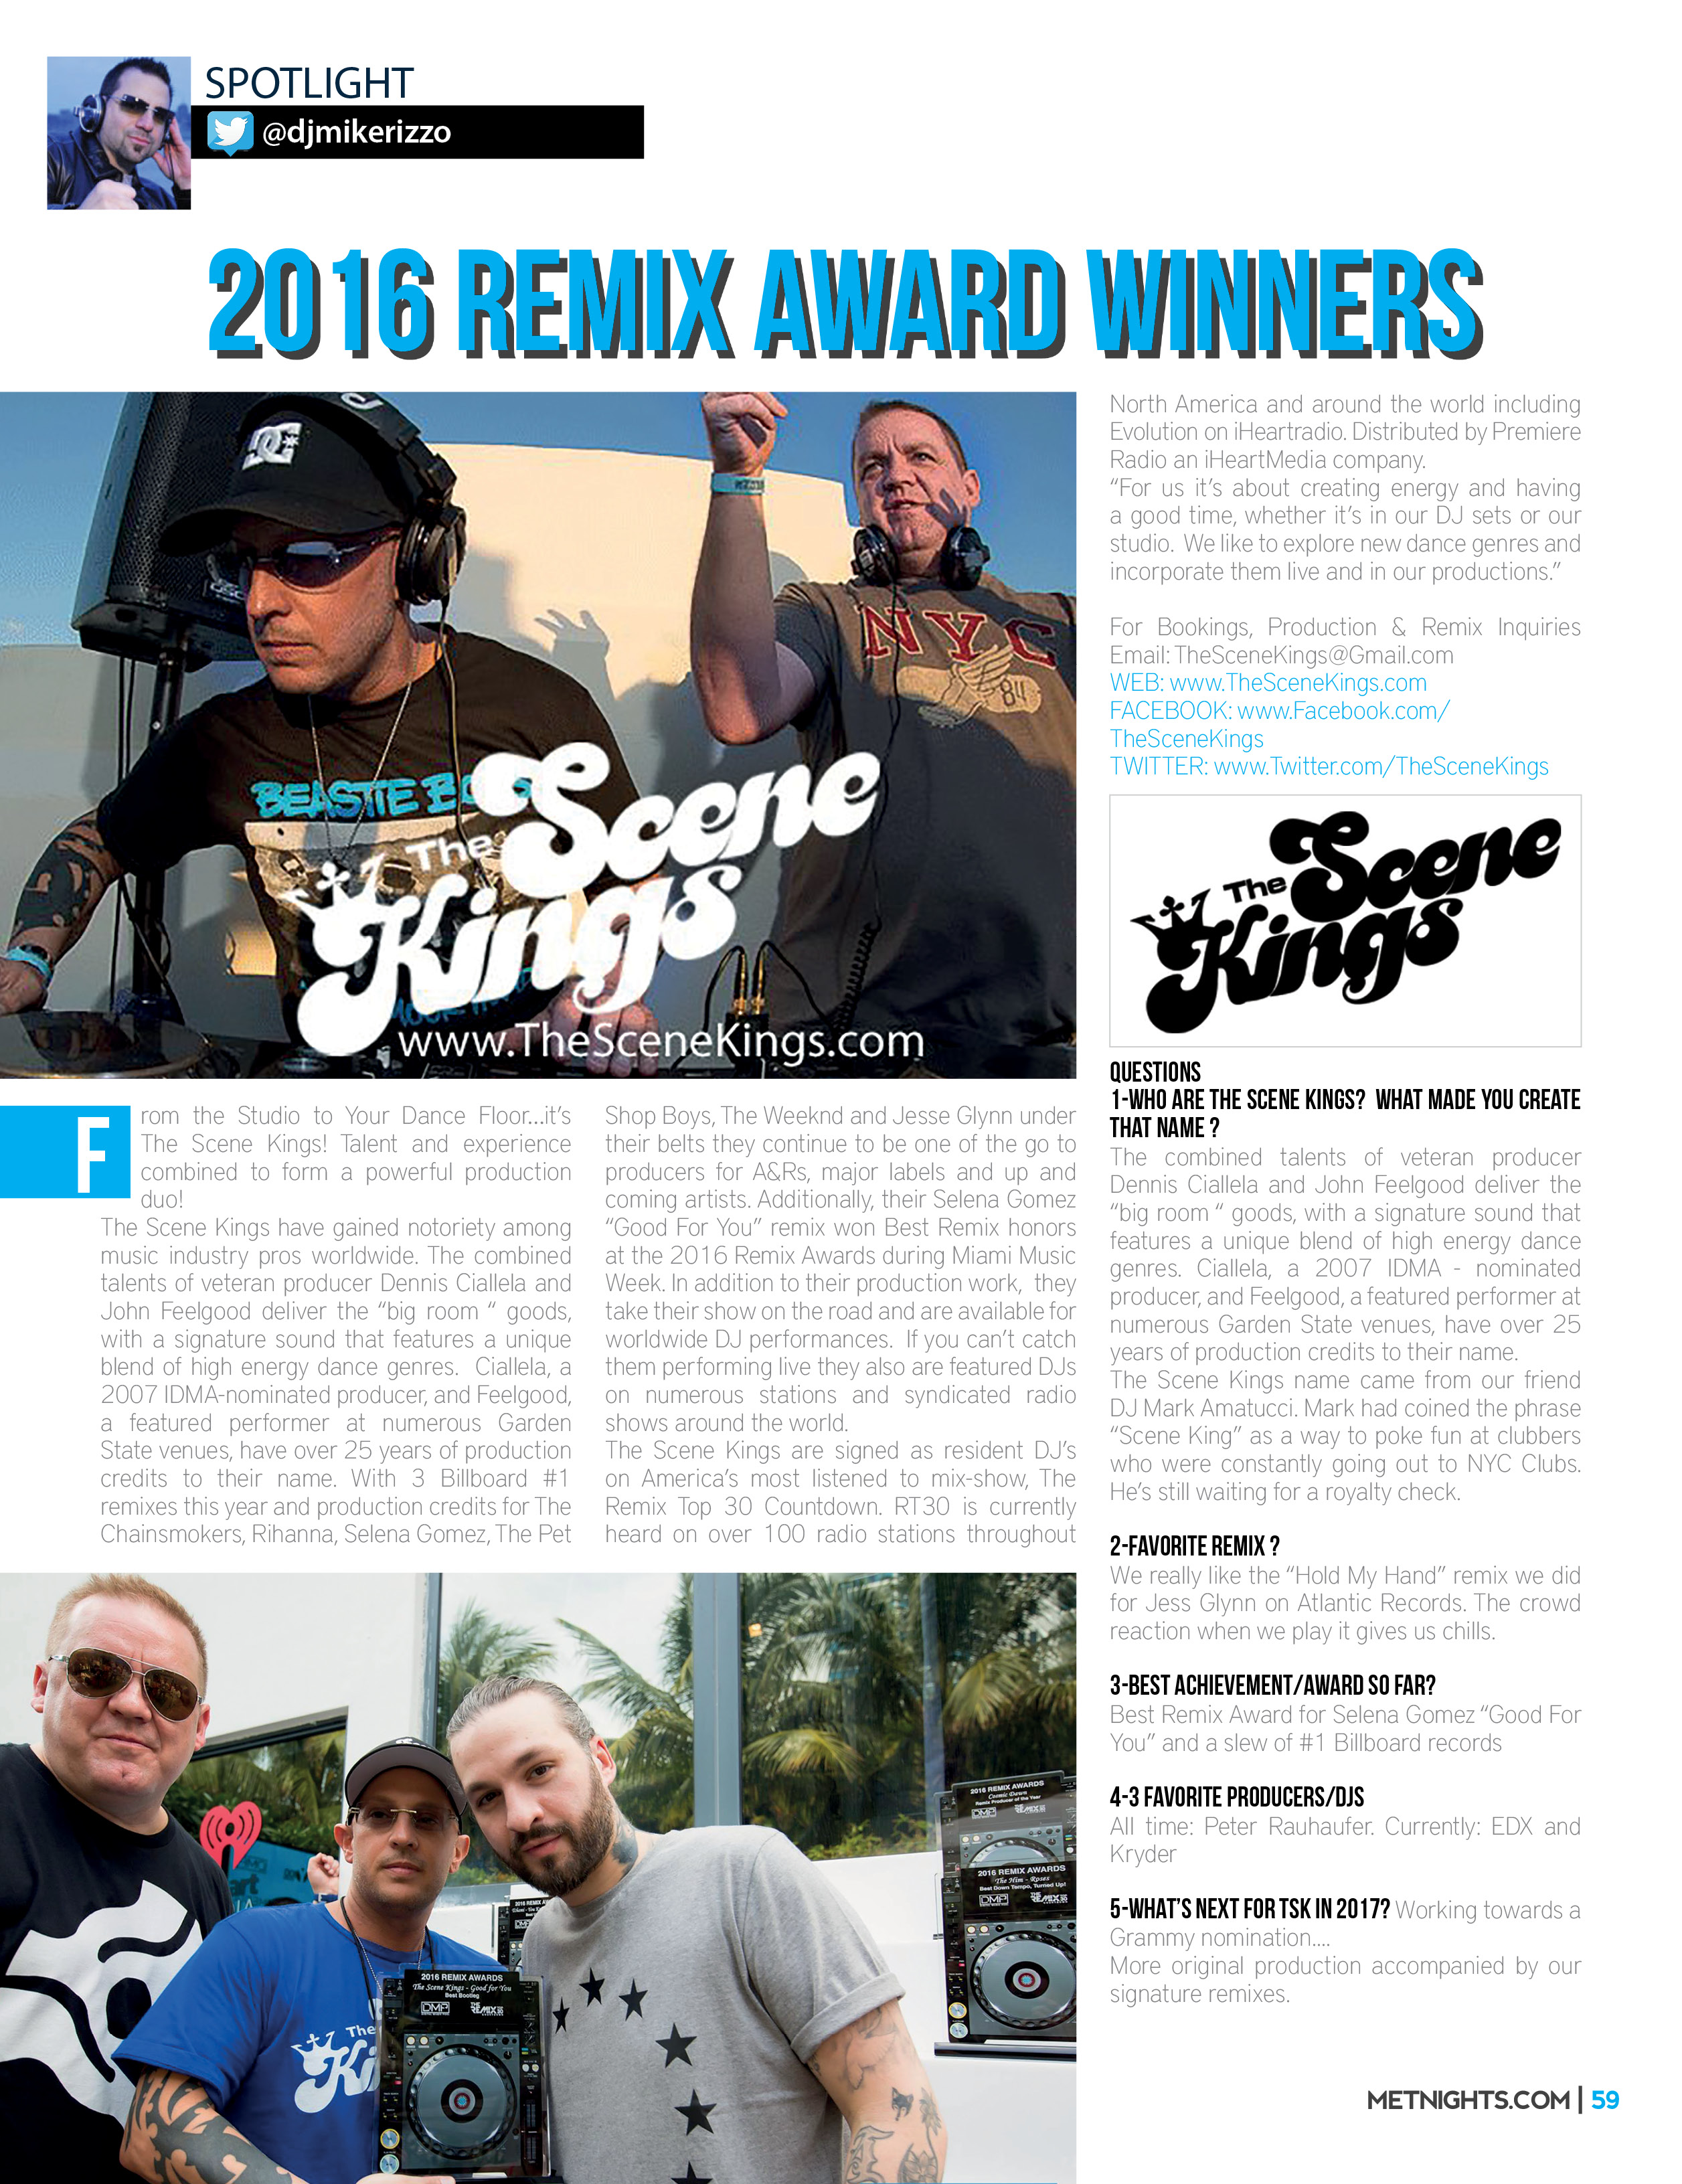 2016 Remix Award winners